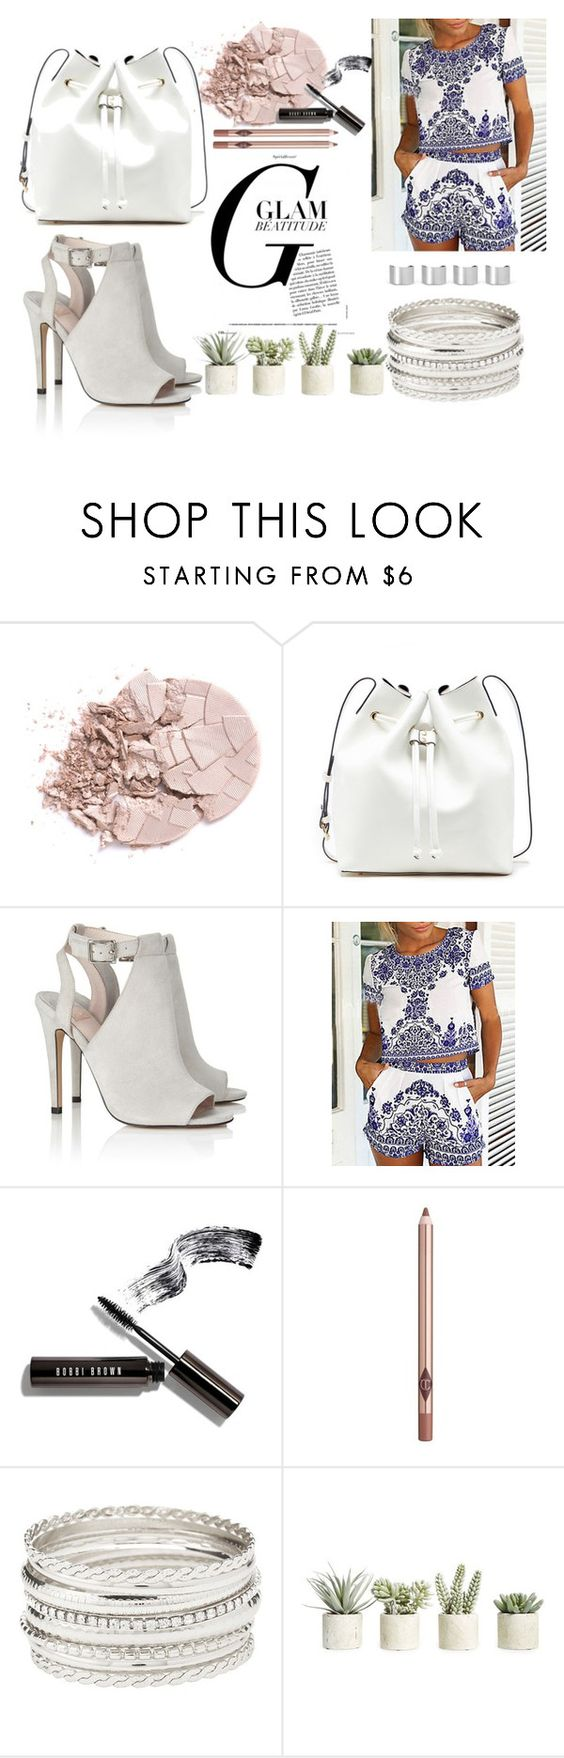 """""""Untitled #19"""" by evita-i-7 ❤ liked on Polyvore featuring Sole Society, Lipsy, Bobbi Brown Cosmetics, Charlotte Tilbury, Charlotte Russe, Allstate Floral and Maison Margiela"""